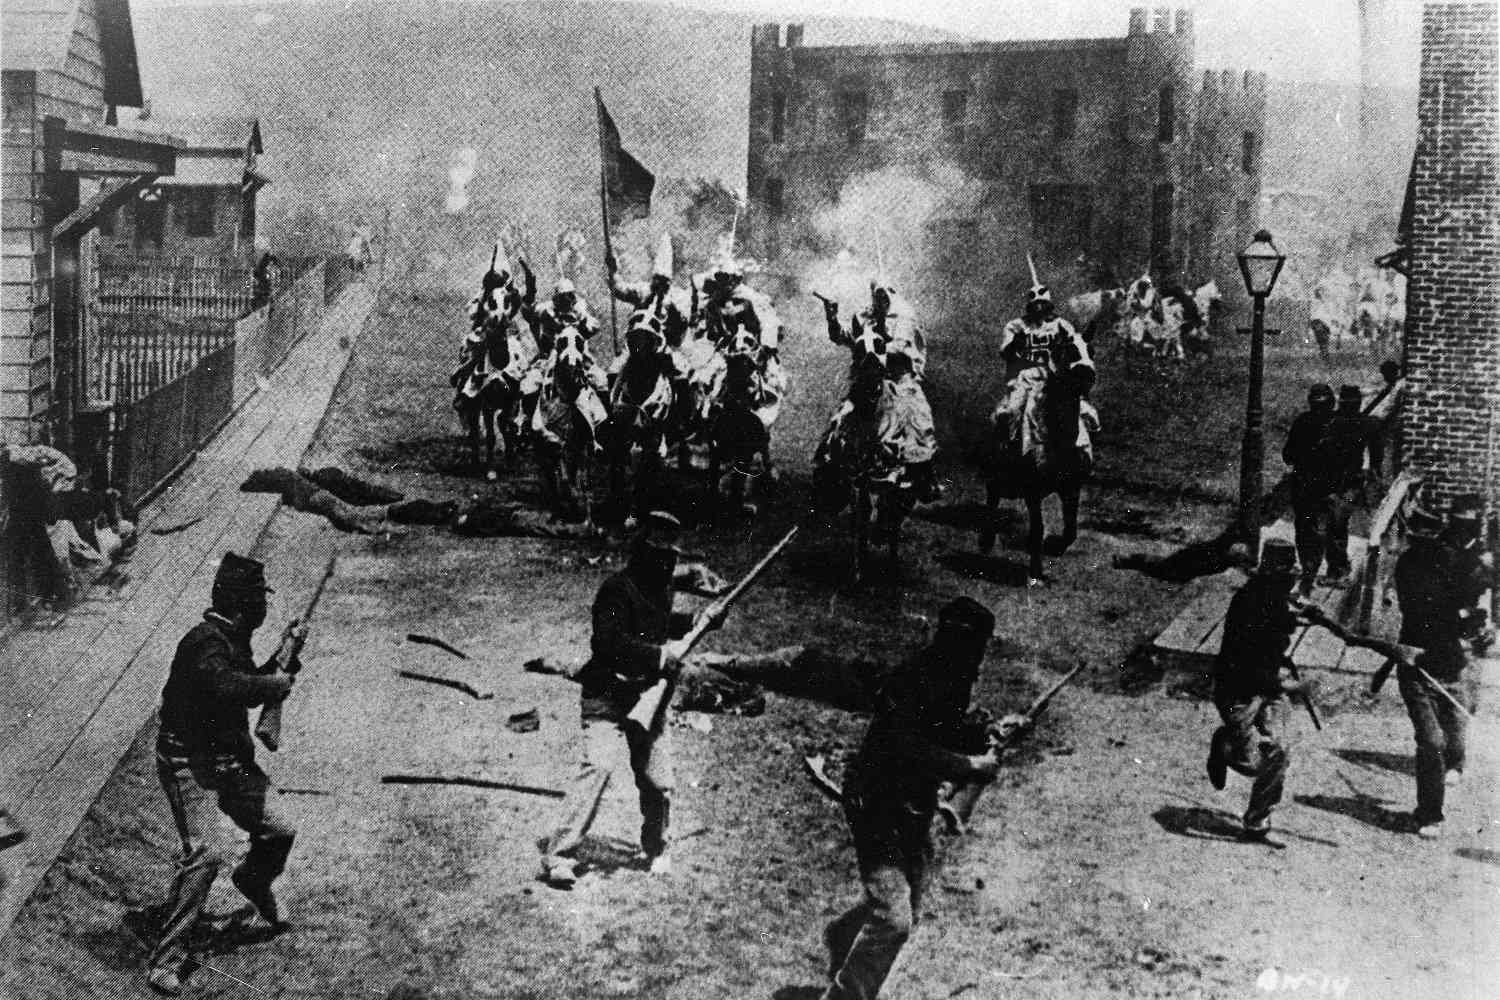 A battle scene from D.W. Griffith's 1915 film 'The Birth of a Nation'